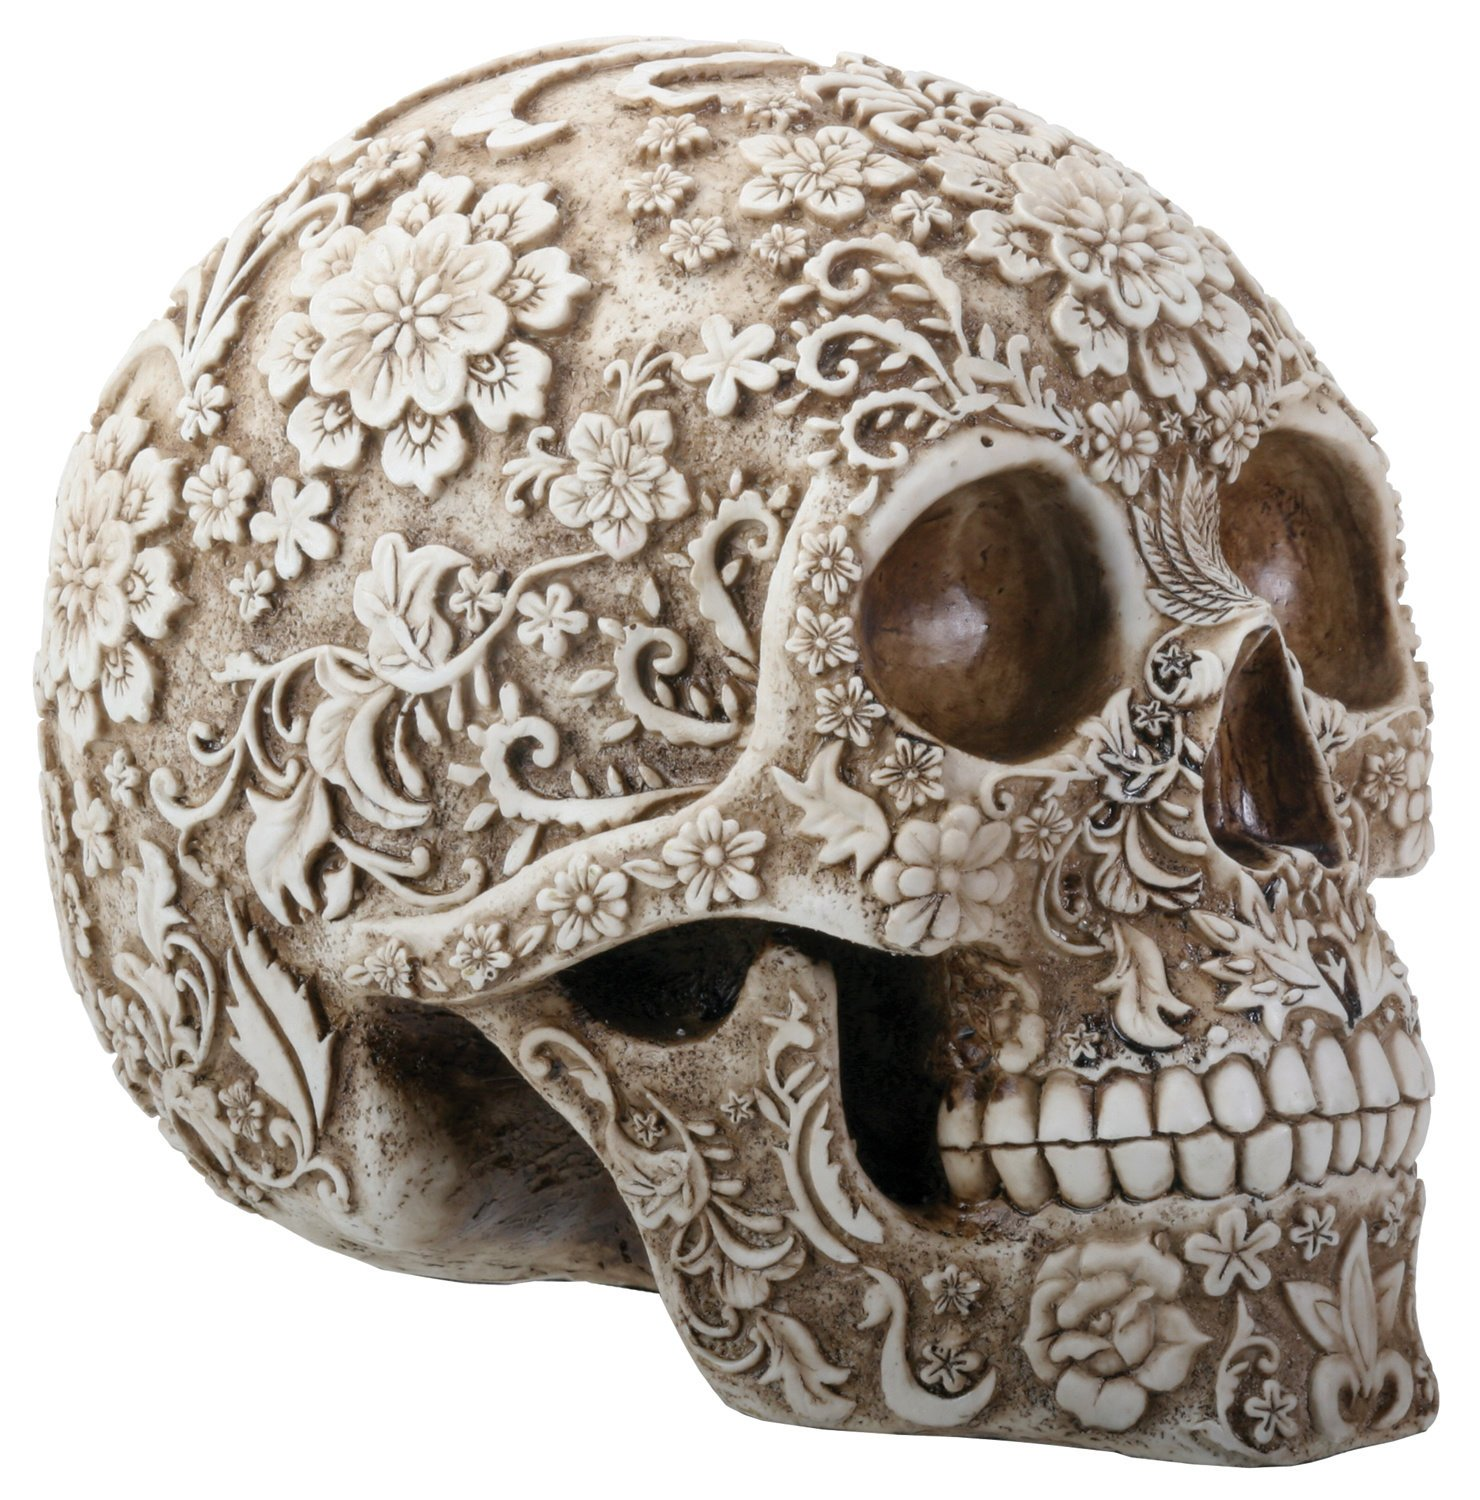 Natural Colored Floral Human Skull Day of the Dead Dia de Los Muertos Figurine by YTC Summit International